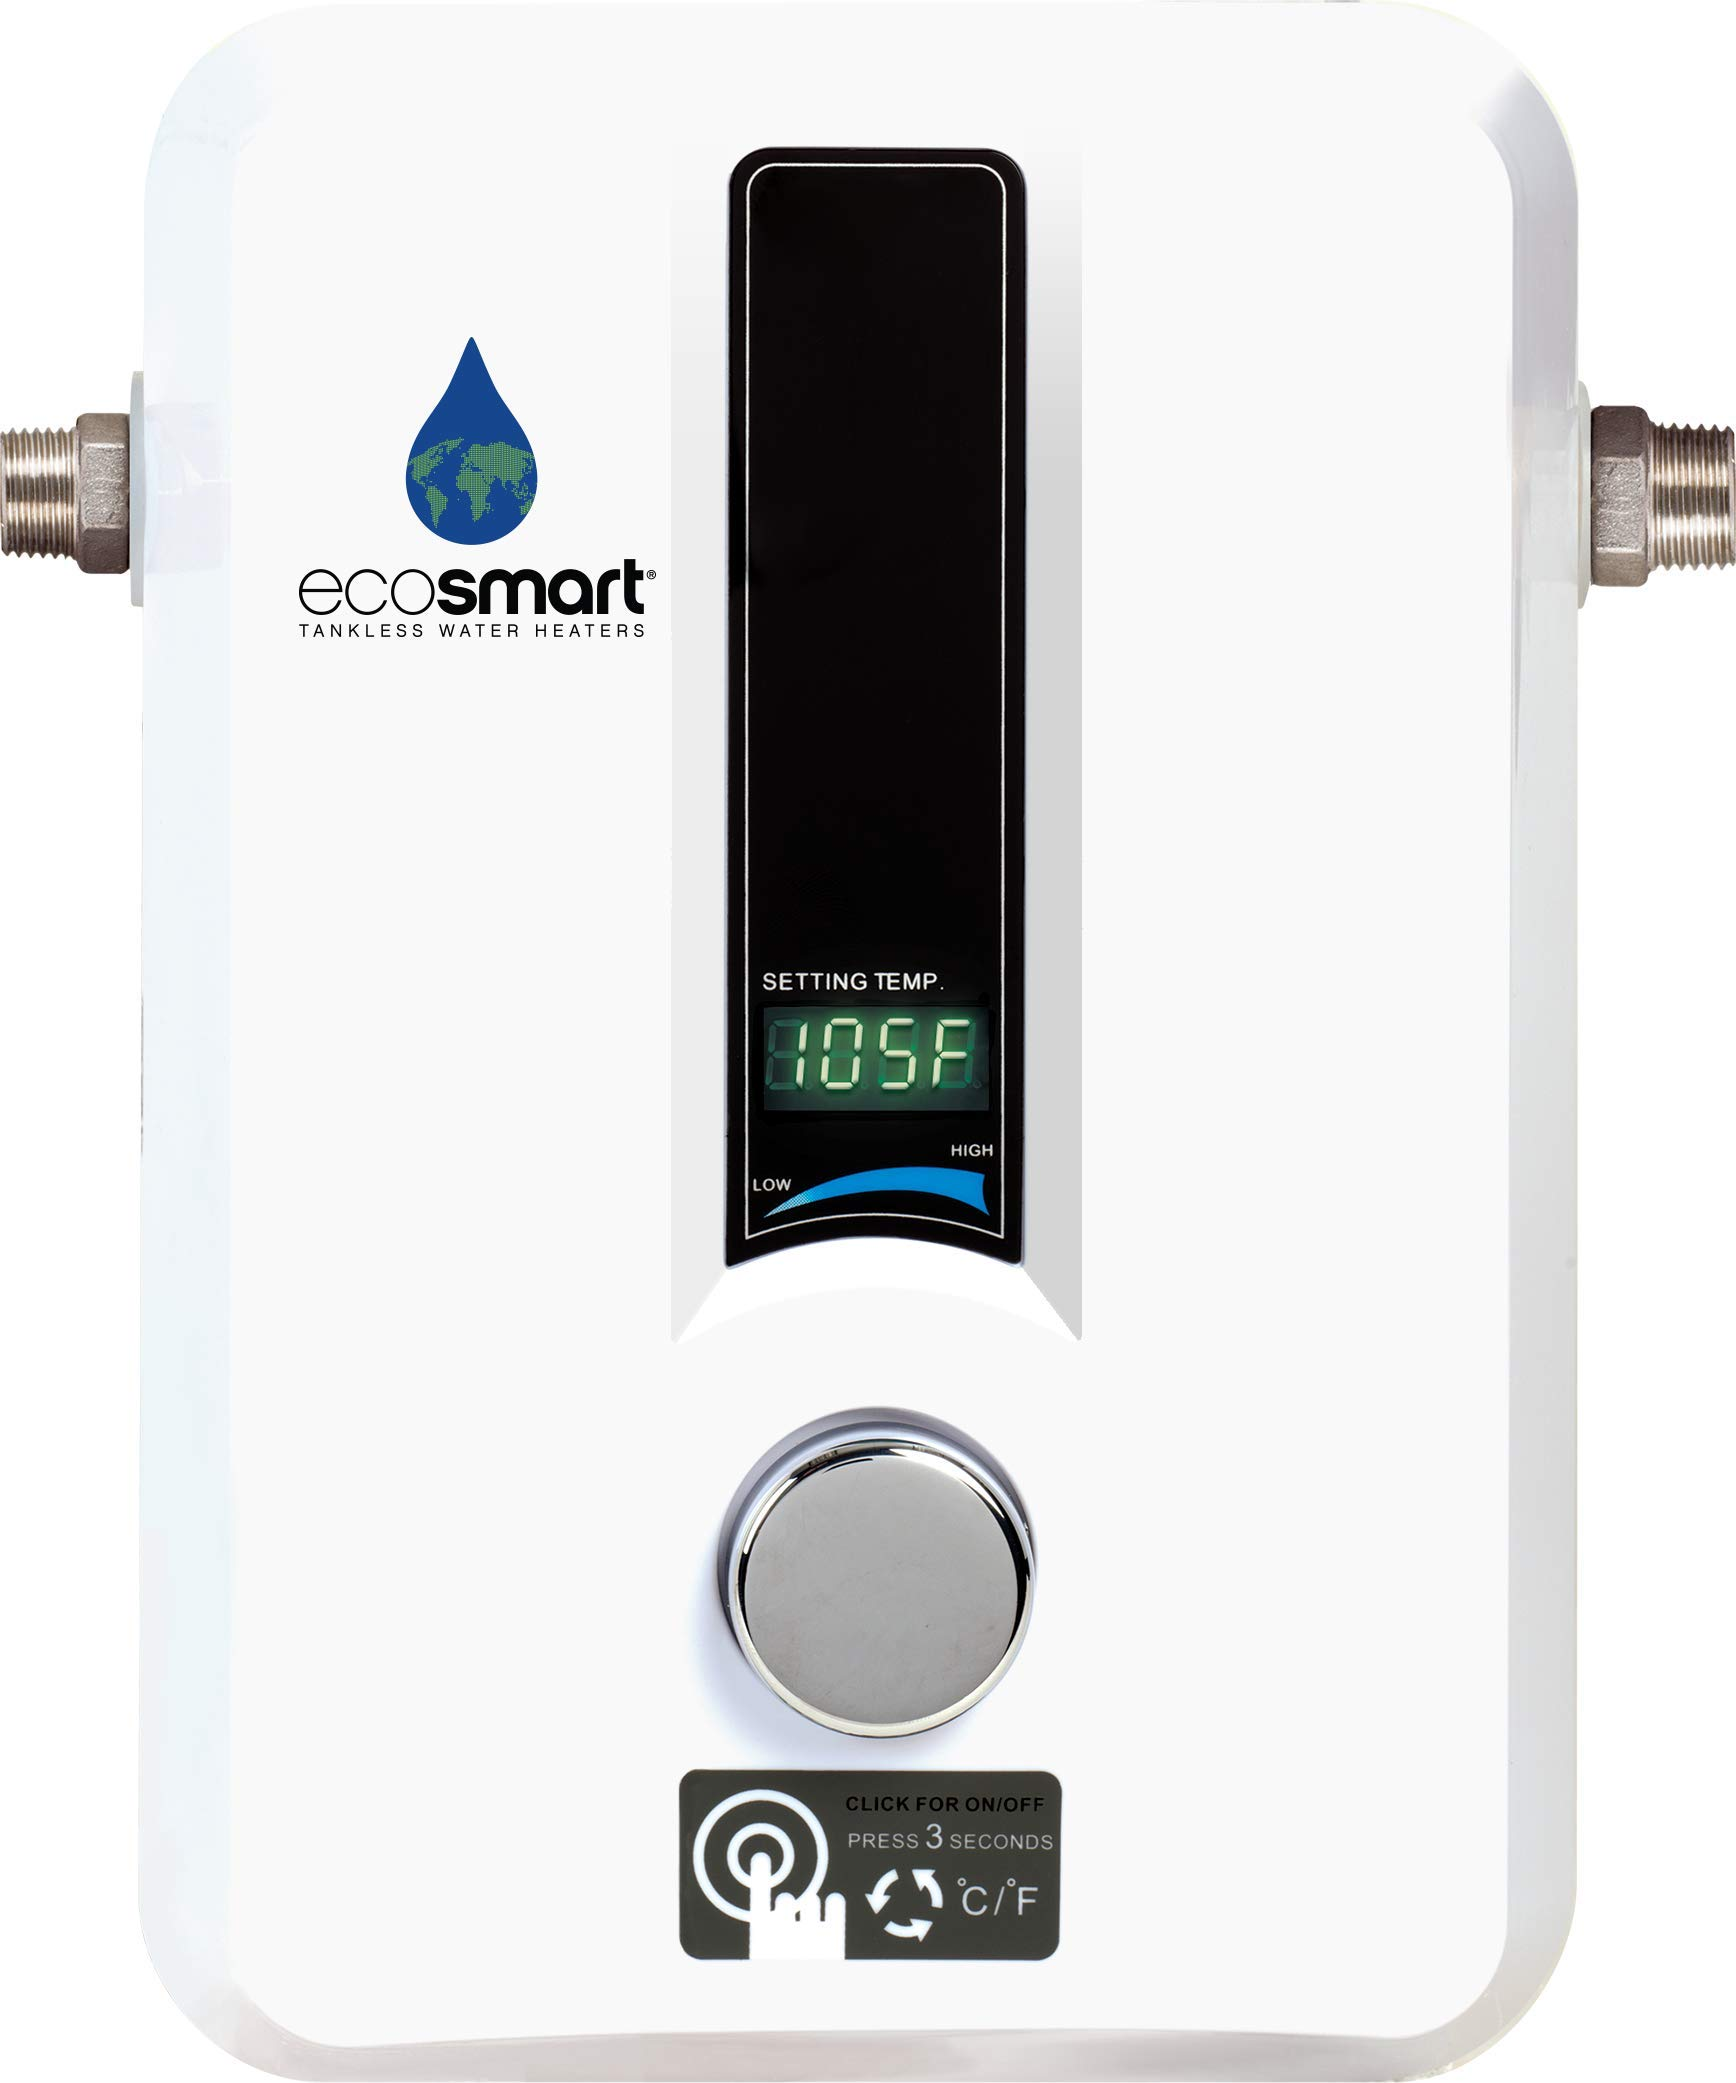 EcoSmart ECO 11 Electric Tankless Water Heater, 13KW at 240 Volts with Patented Self Modulating Technology by Ecosmart